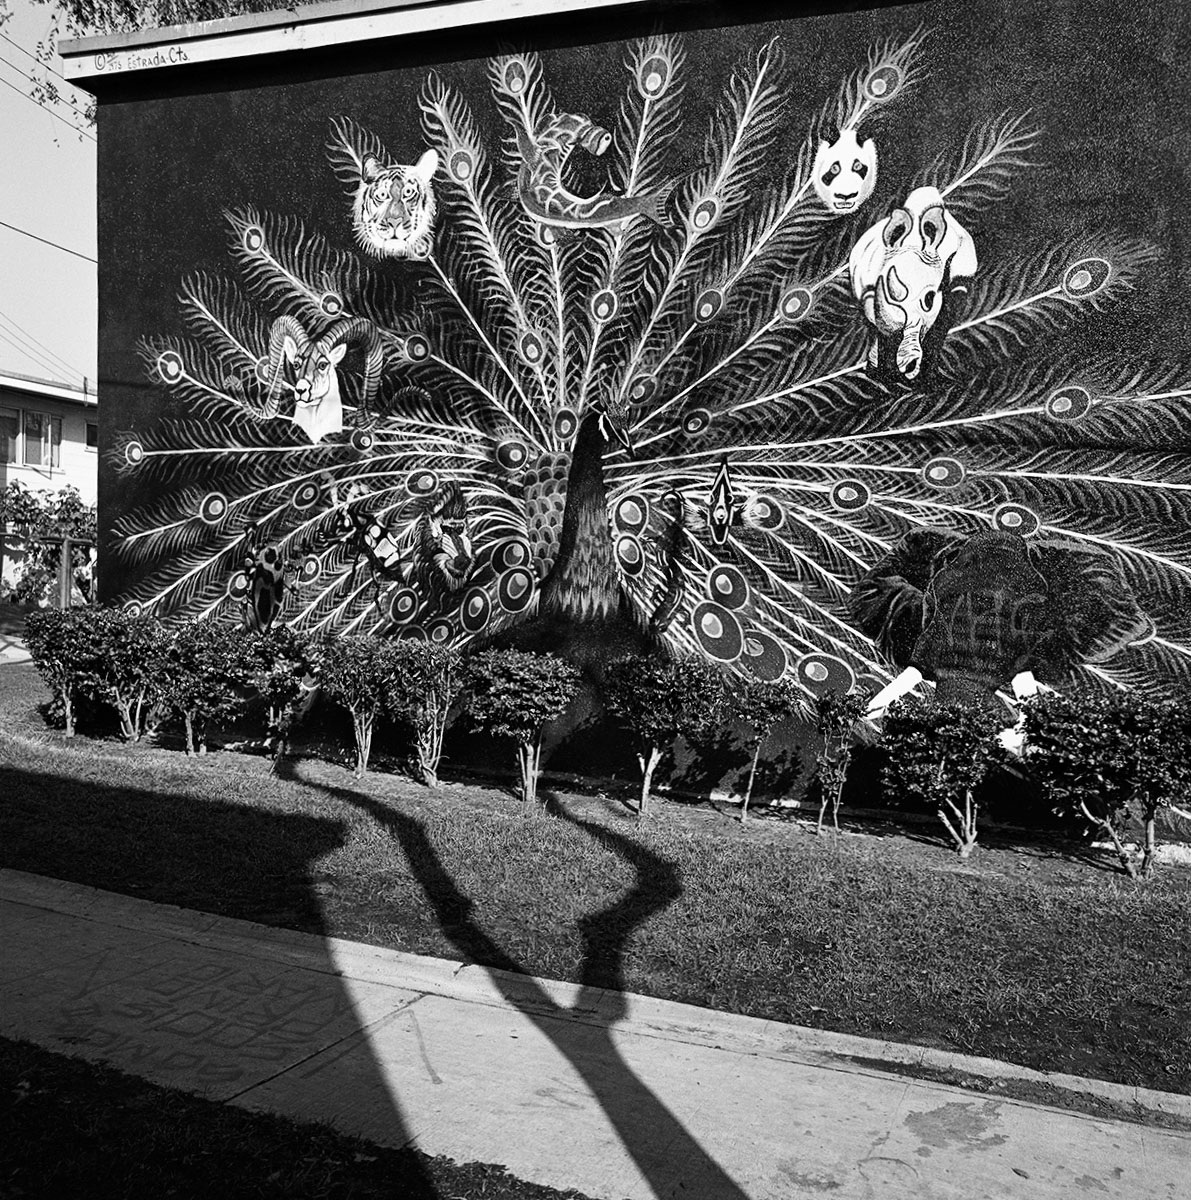 Peacock Mural, East Los Angeles, 1978